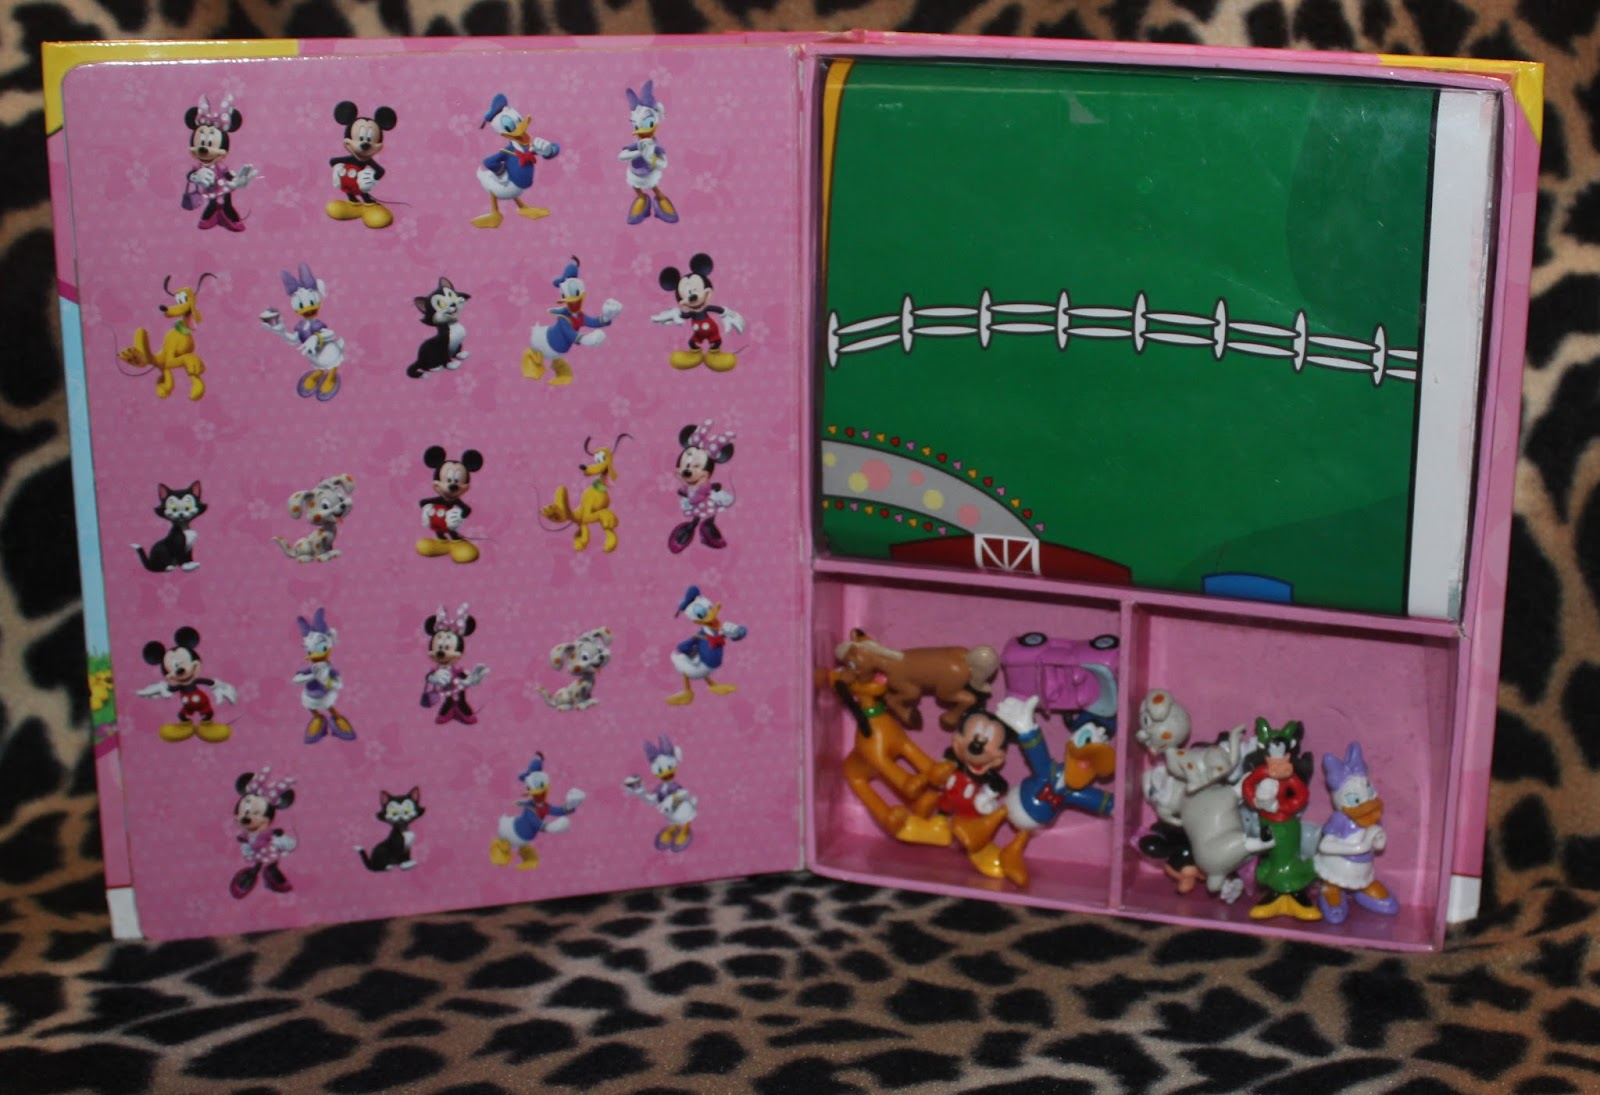 There's one more awesome stuff included, the mickey mouse clubhouse mat map.